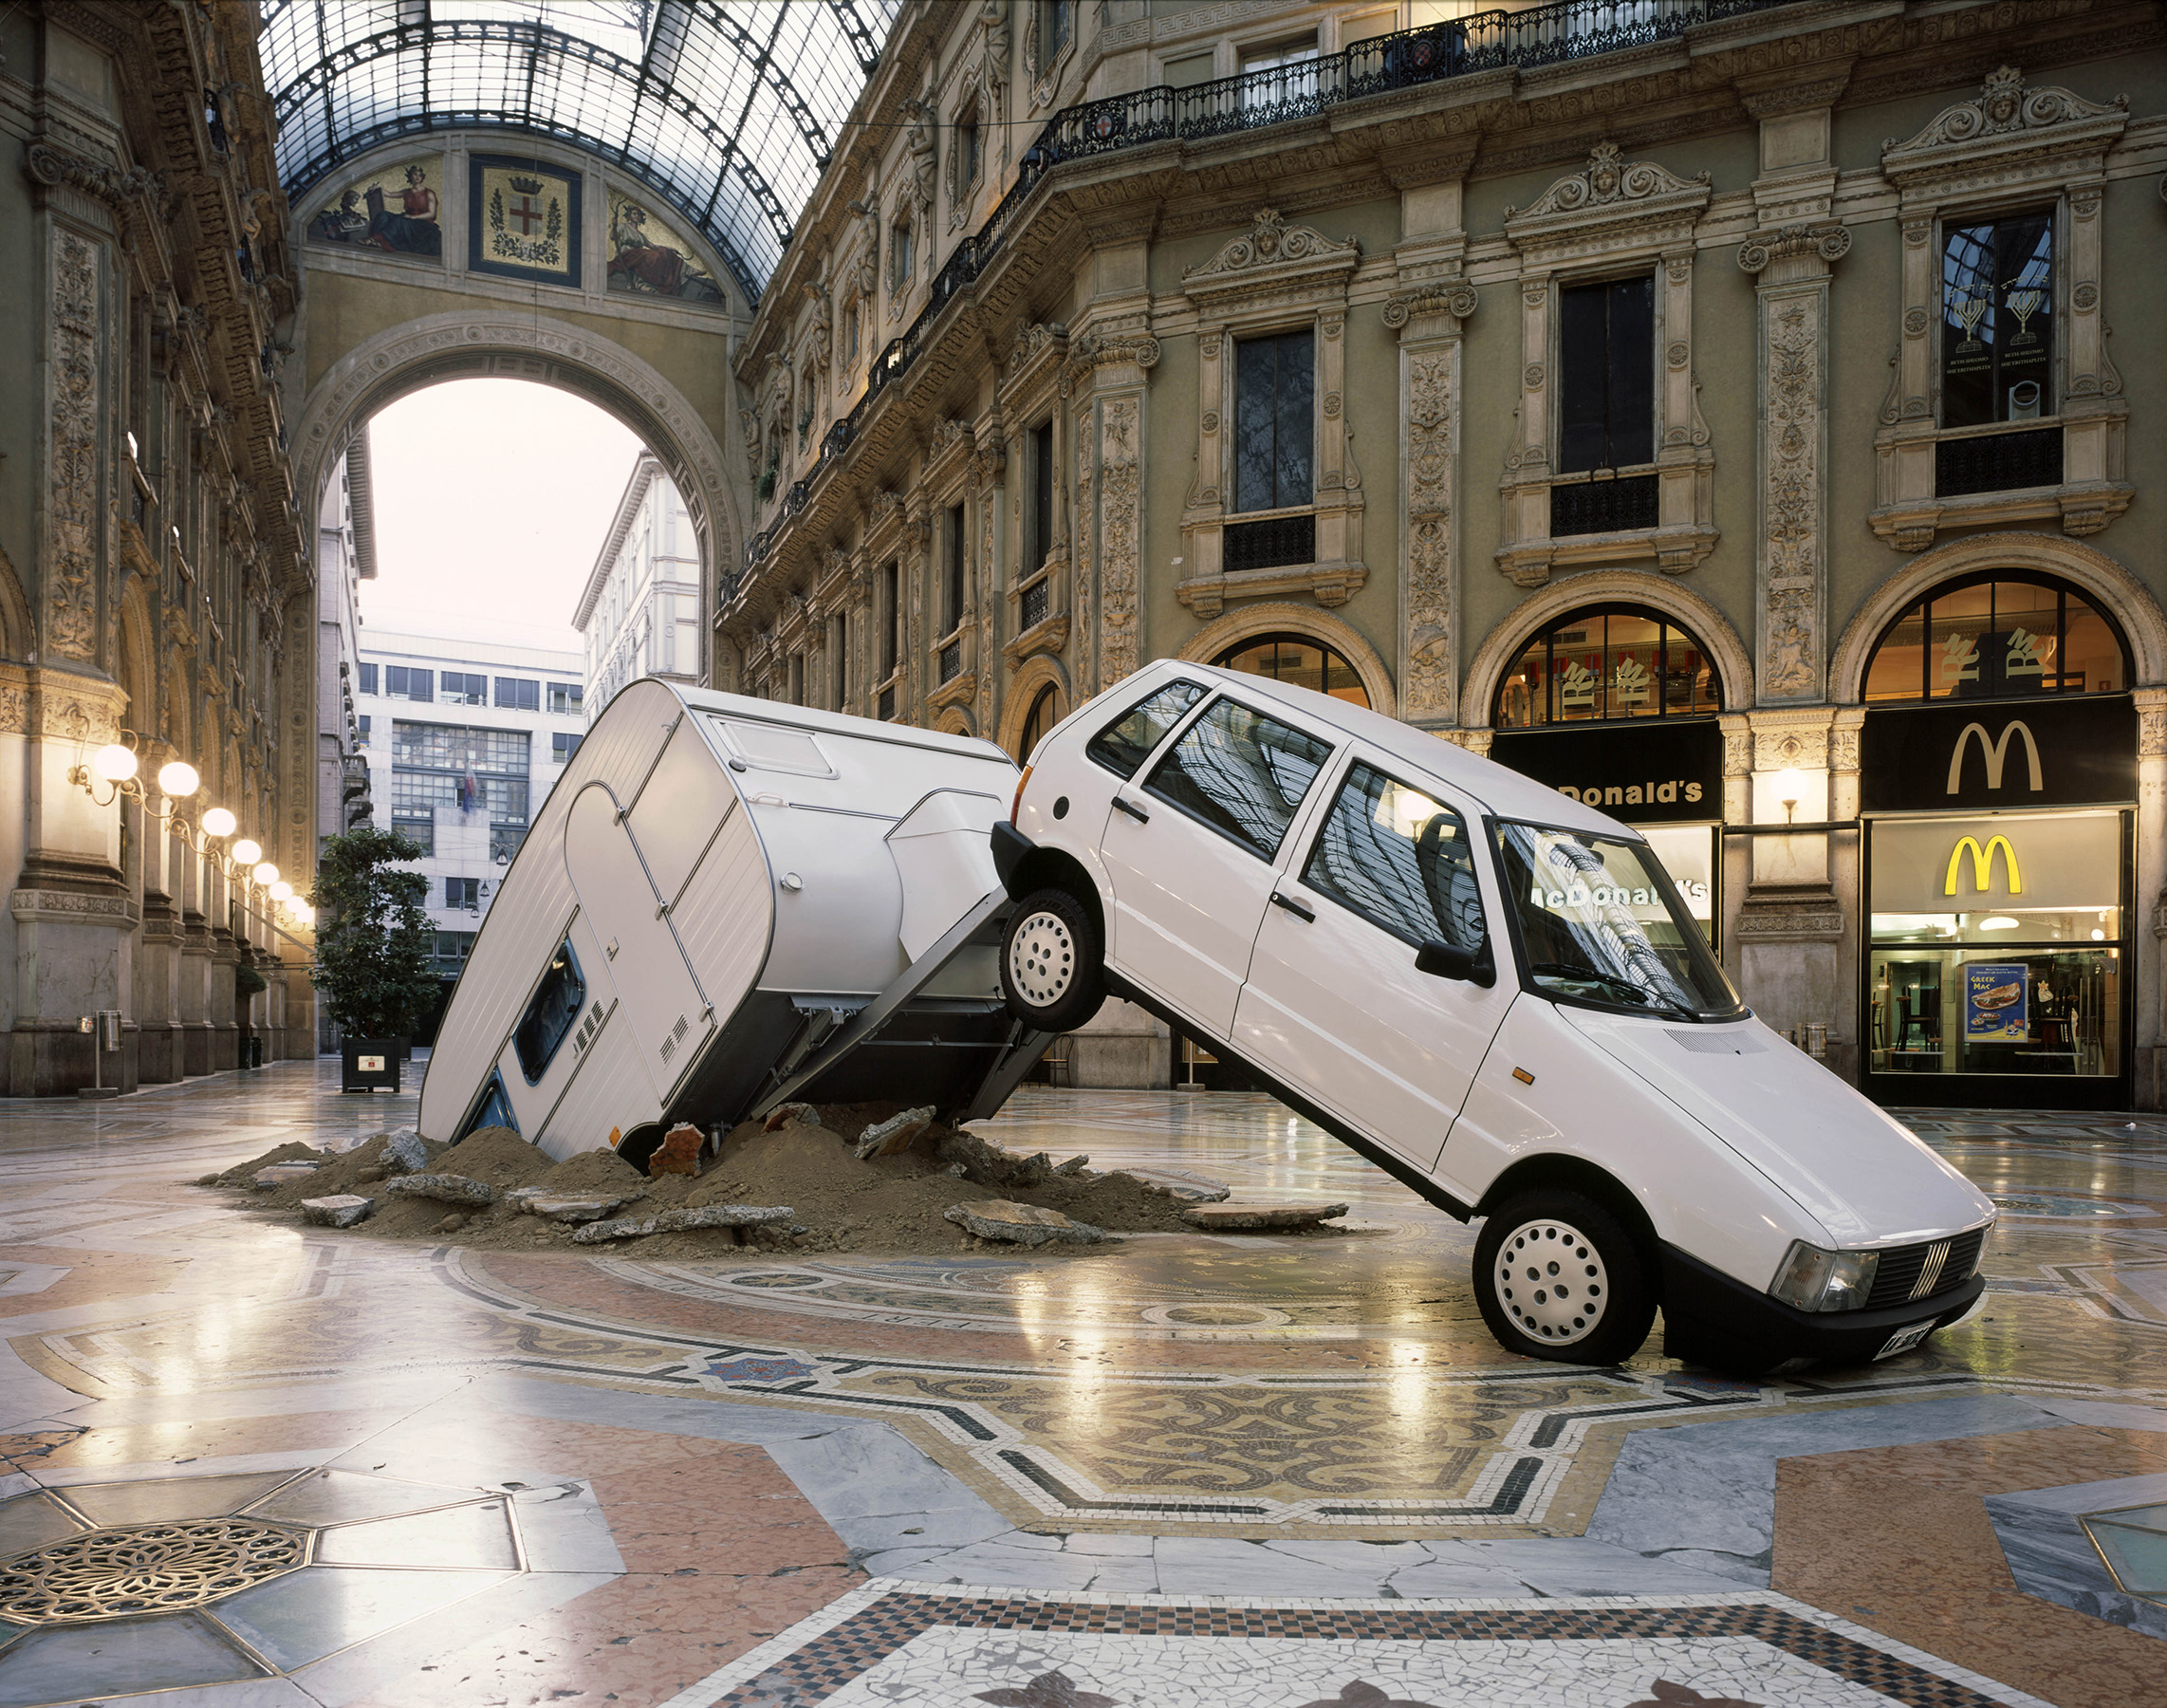 Elmgreen & Dragset artwork where a Fiat Punto caravan has crashed an italian public square in Milan.